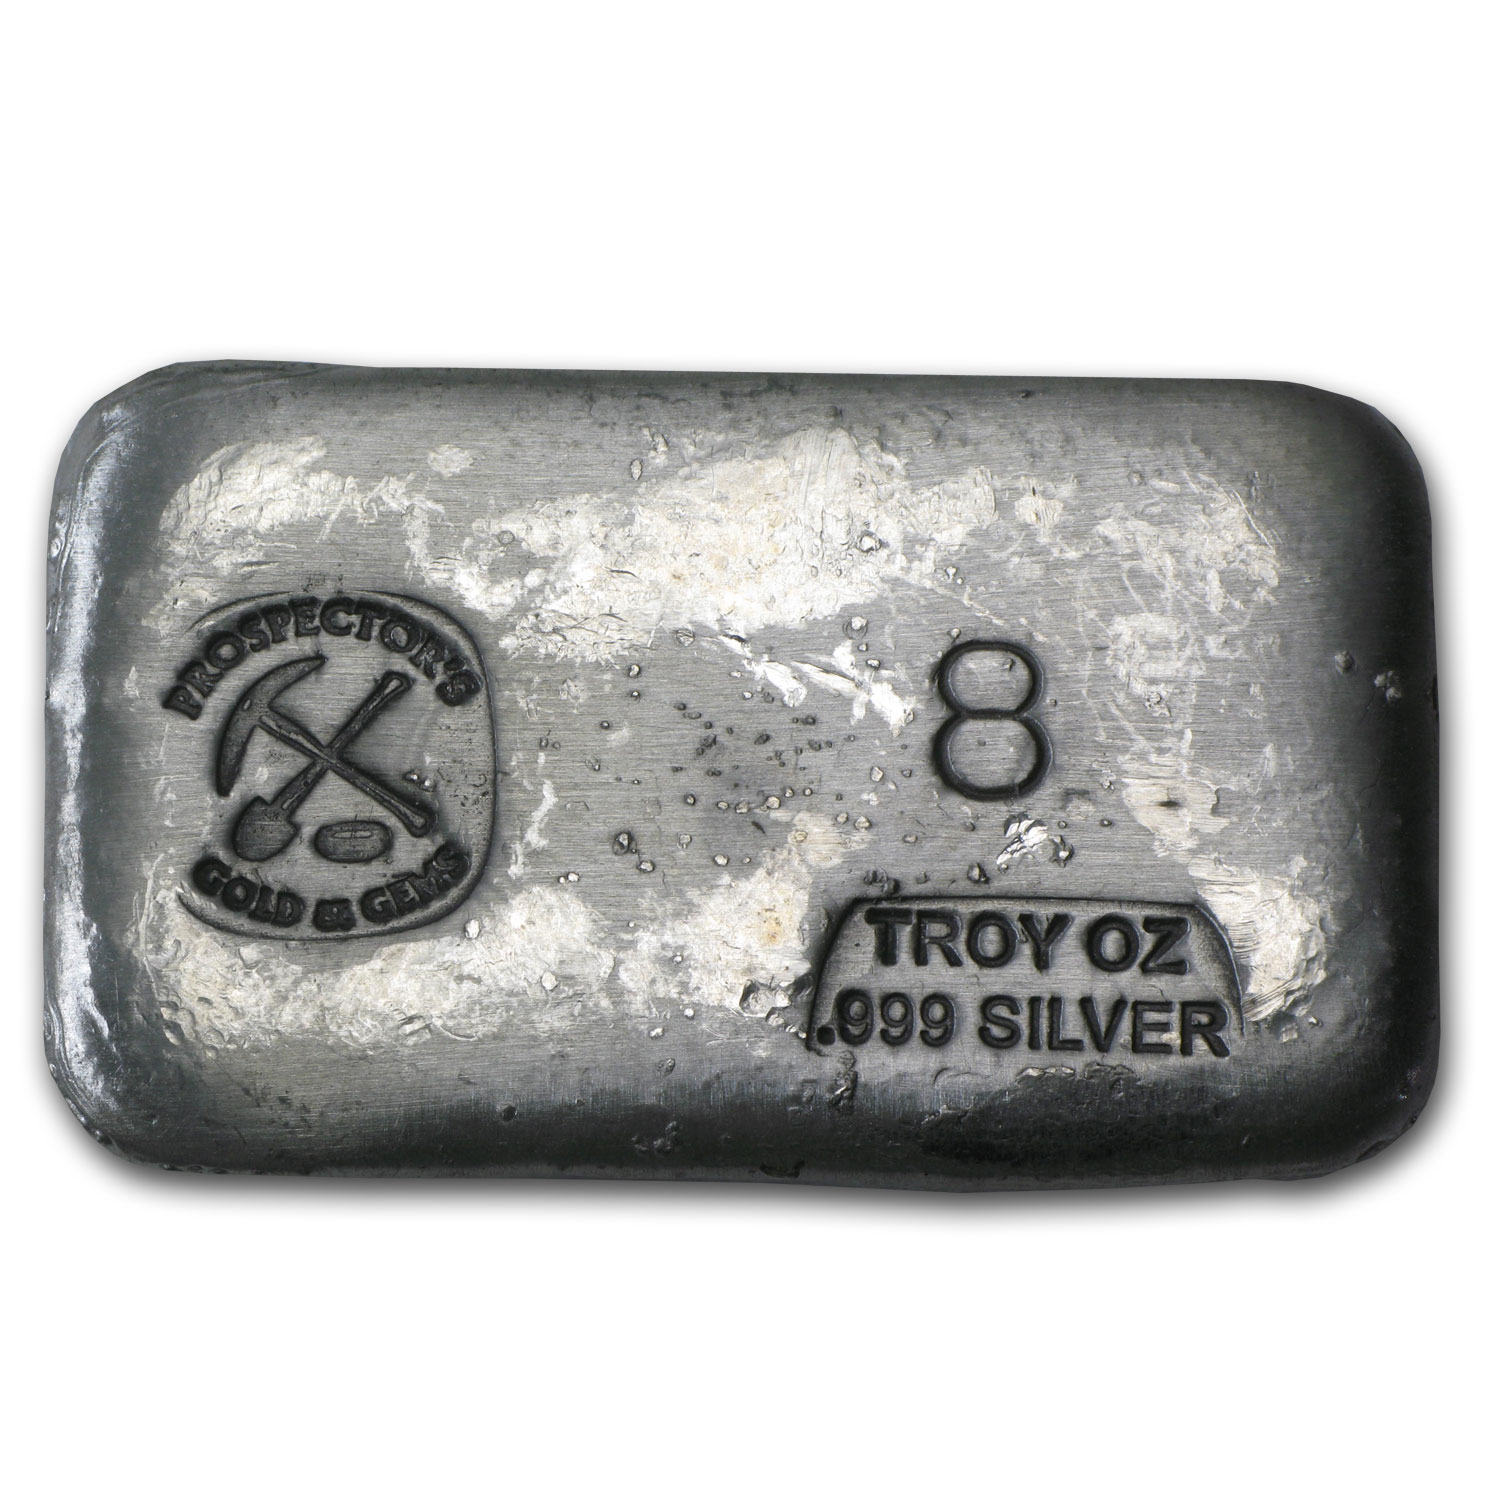 8 oz Silver Bars - Prospector's Gold & Gems